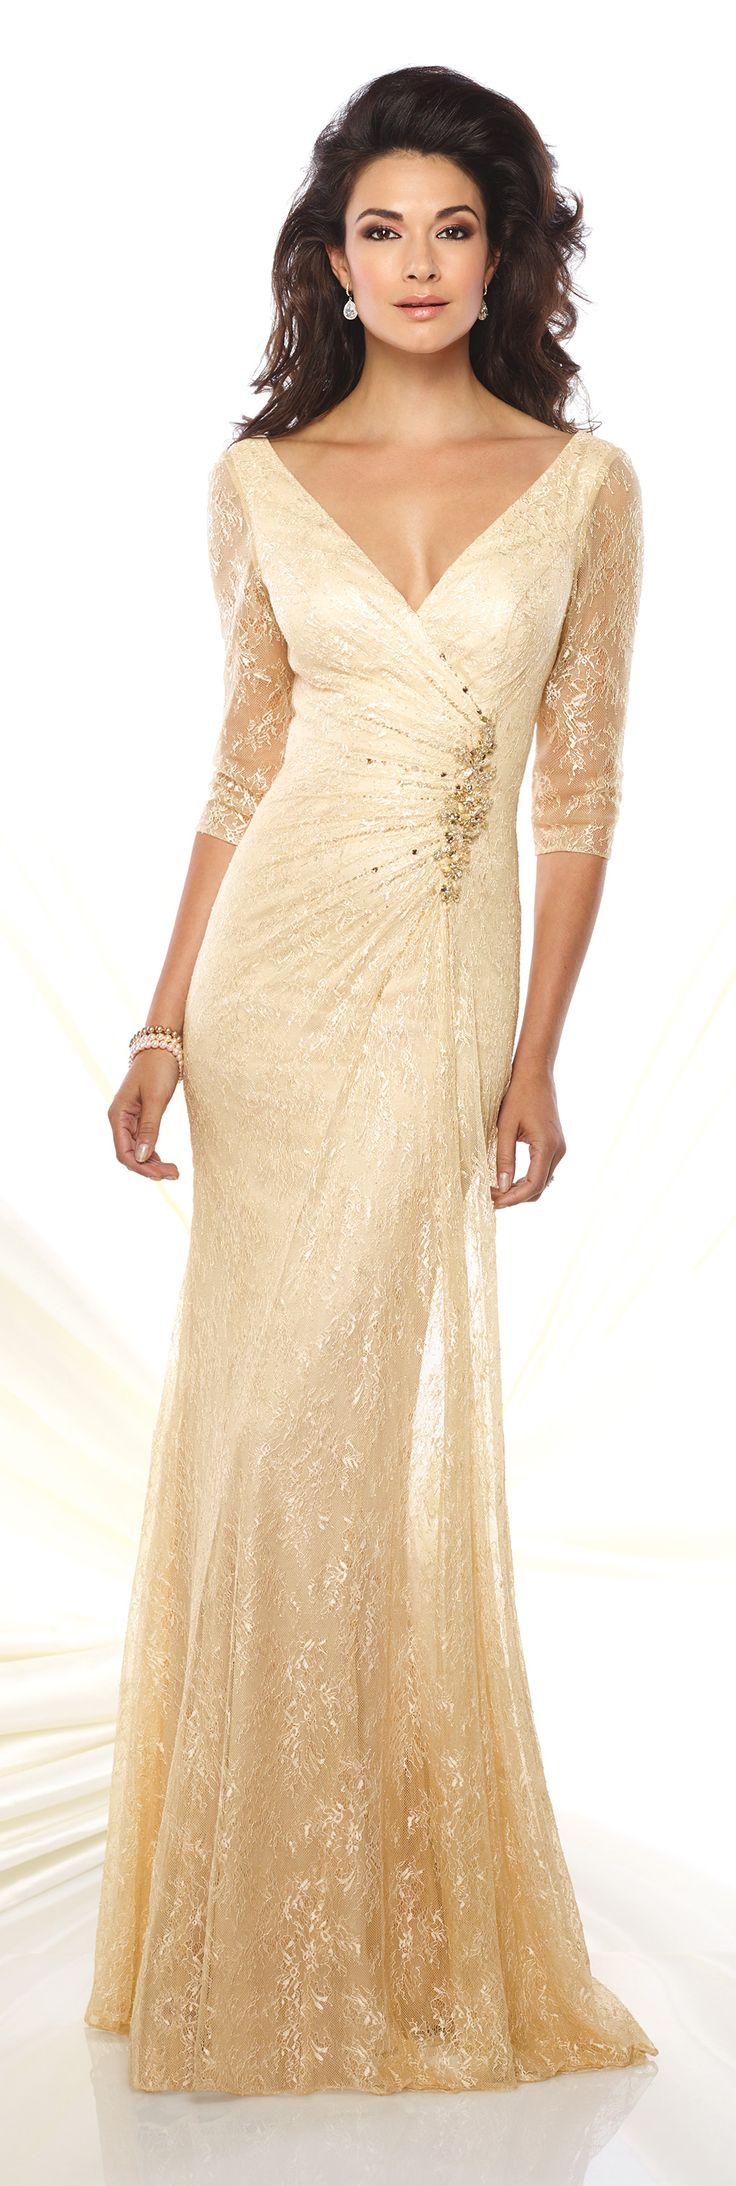 Formal Evening Gowns by Mon Cheri - Spring 2016 - Style No. 116932  #eveninggowns